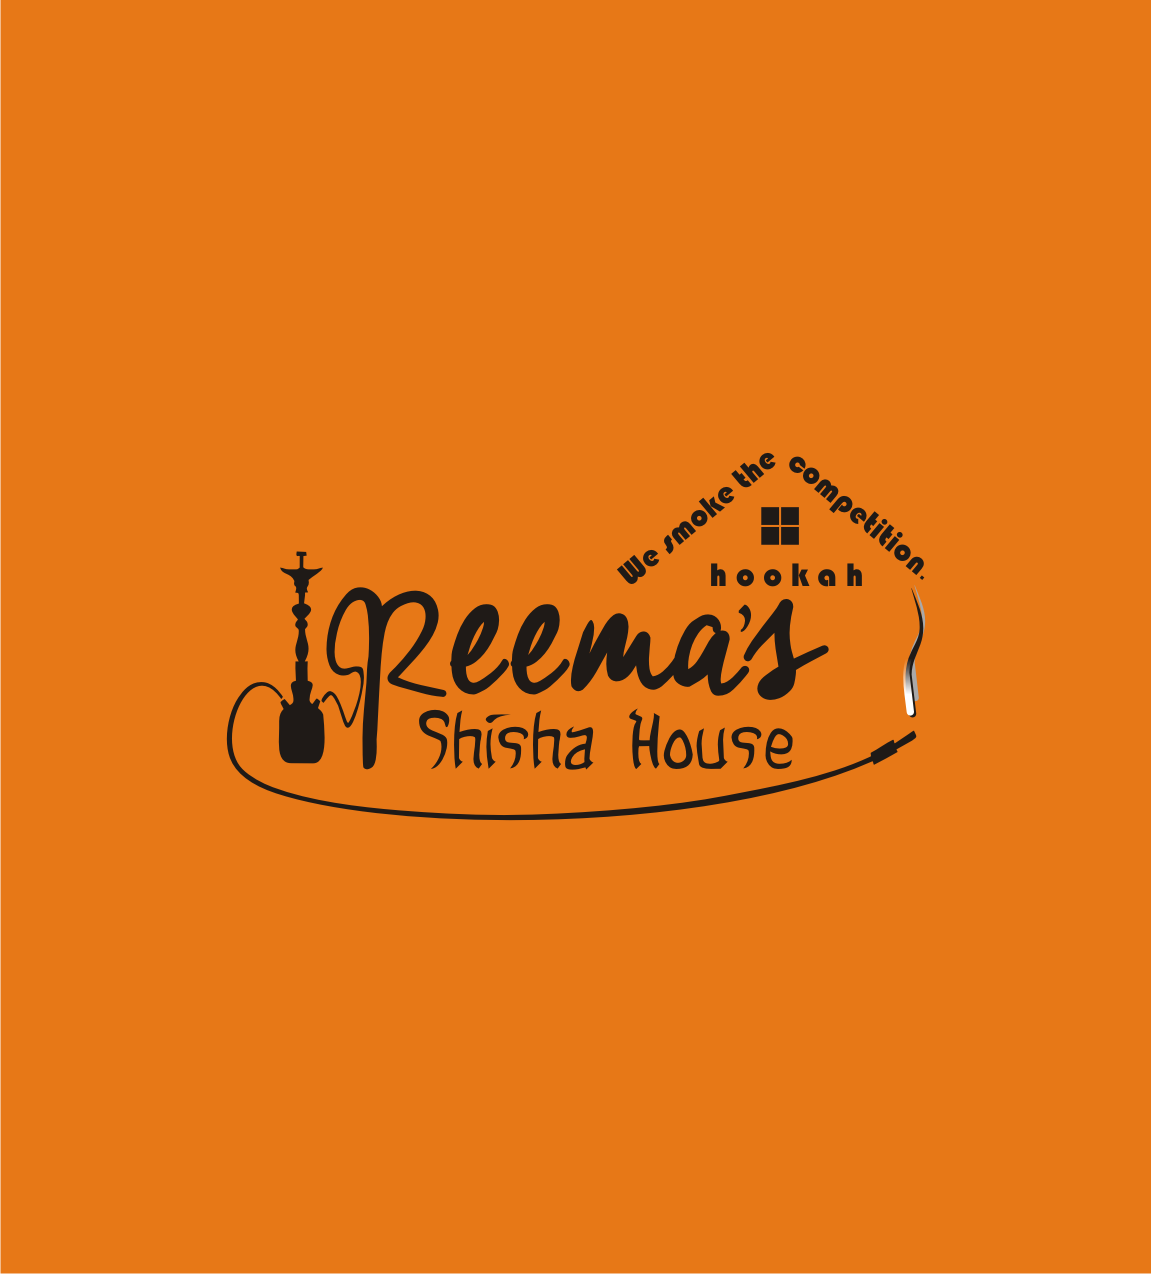 Logo Design by Nthus Nthis - Entry No. 24 in the Logo Design Contest Captivating Logo Design for Reema's Shisha House.